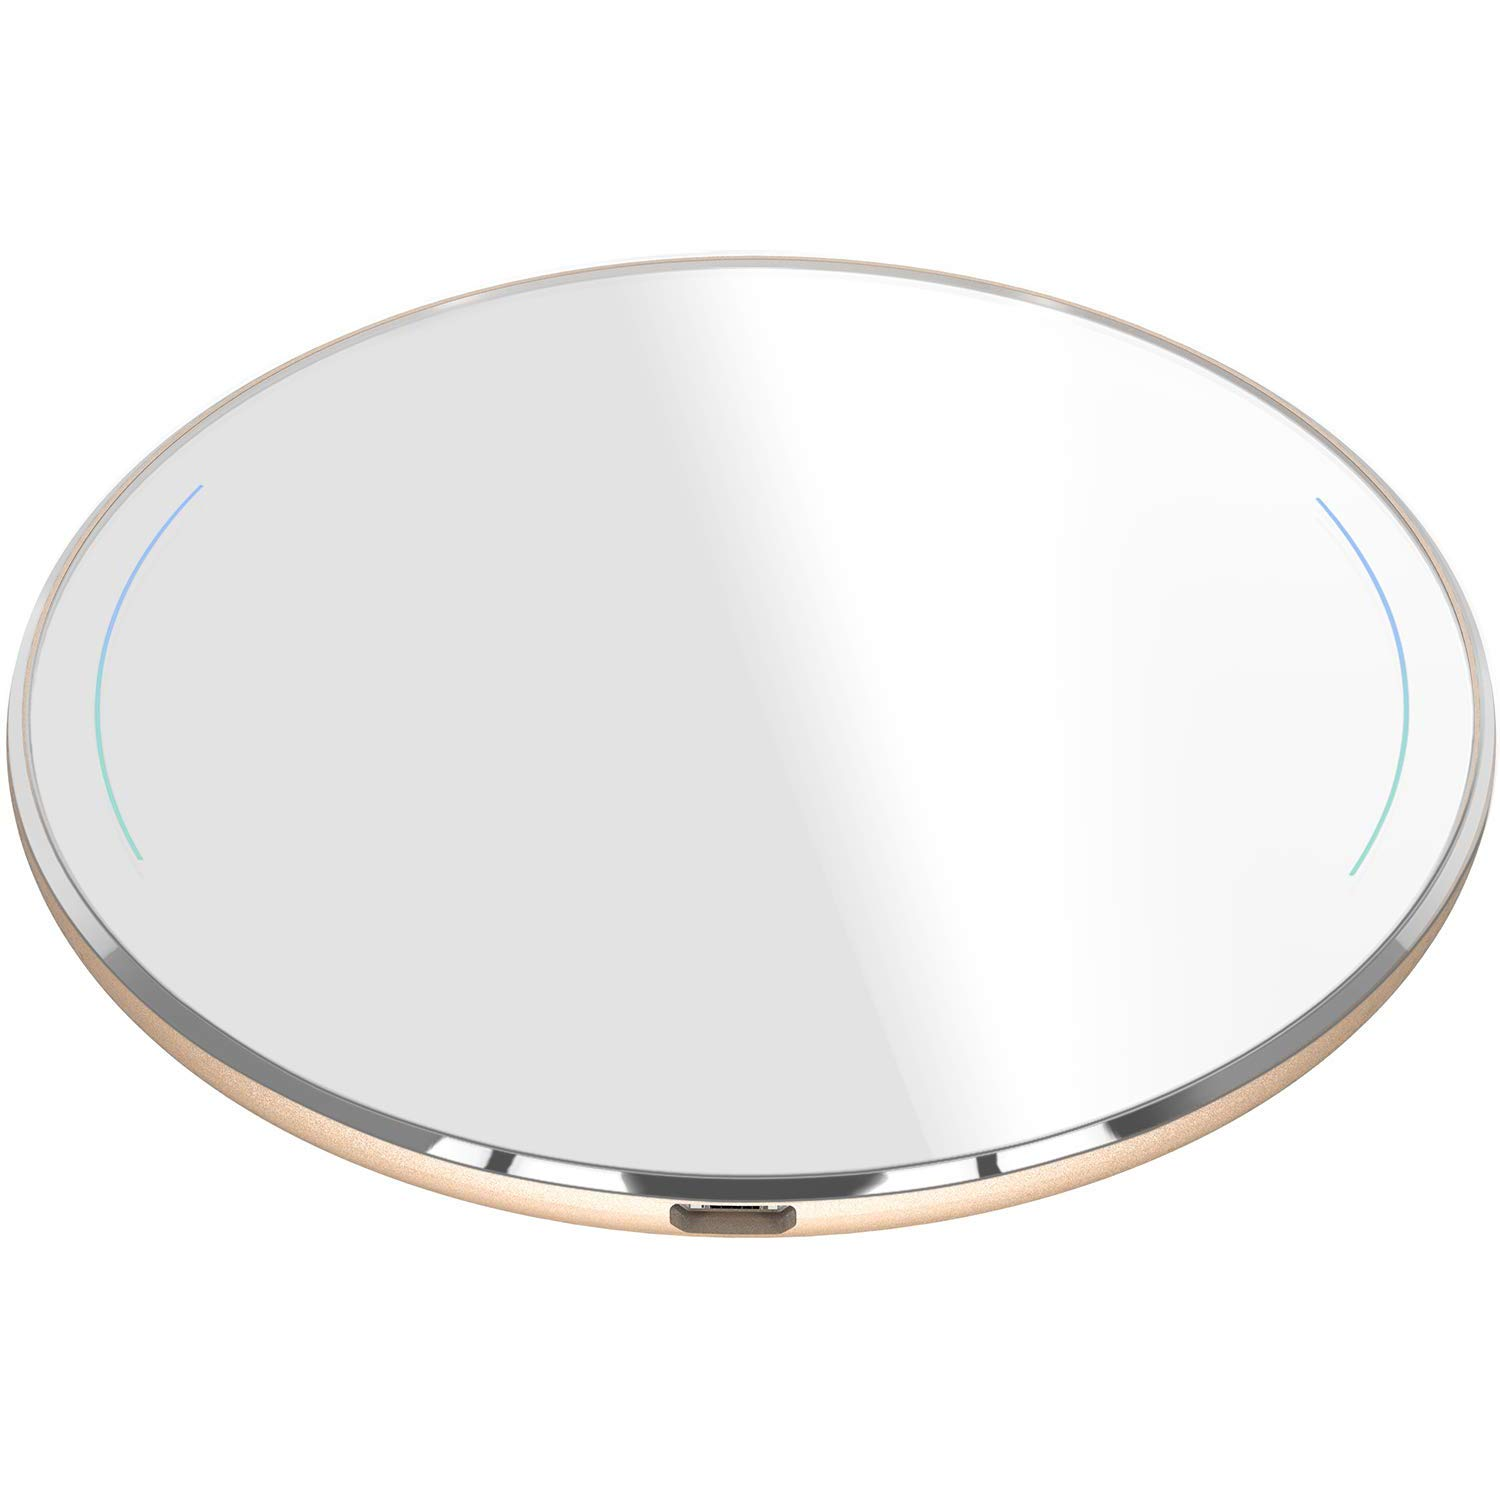 TOZO Wireless Charger Ultra Thin Aviation Aluminum FastCharging Pad for iPhone 11/11 Pro/11 Pro Max/XS MAX/XR/XS/X/8, Galaxy S10/S10 Plus/S10E/Note 10/Note 10 Plus/9/8 [Gold]-NO AC Adapter